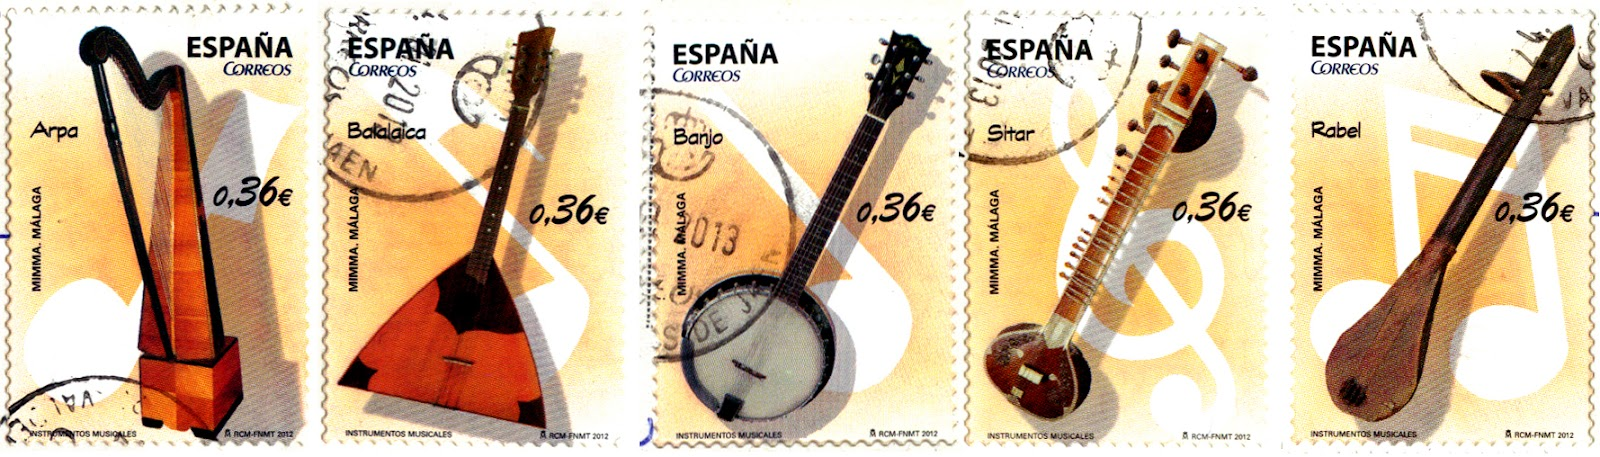 traditional spanish instruments 0537 amp 0538 spain andalusia